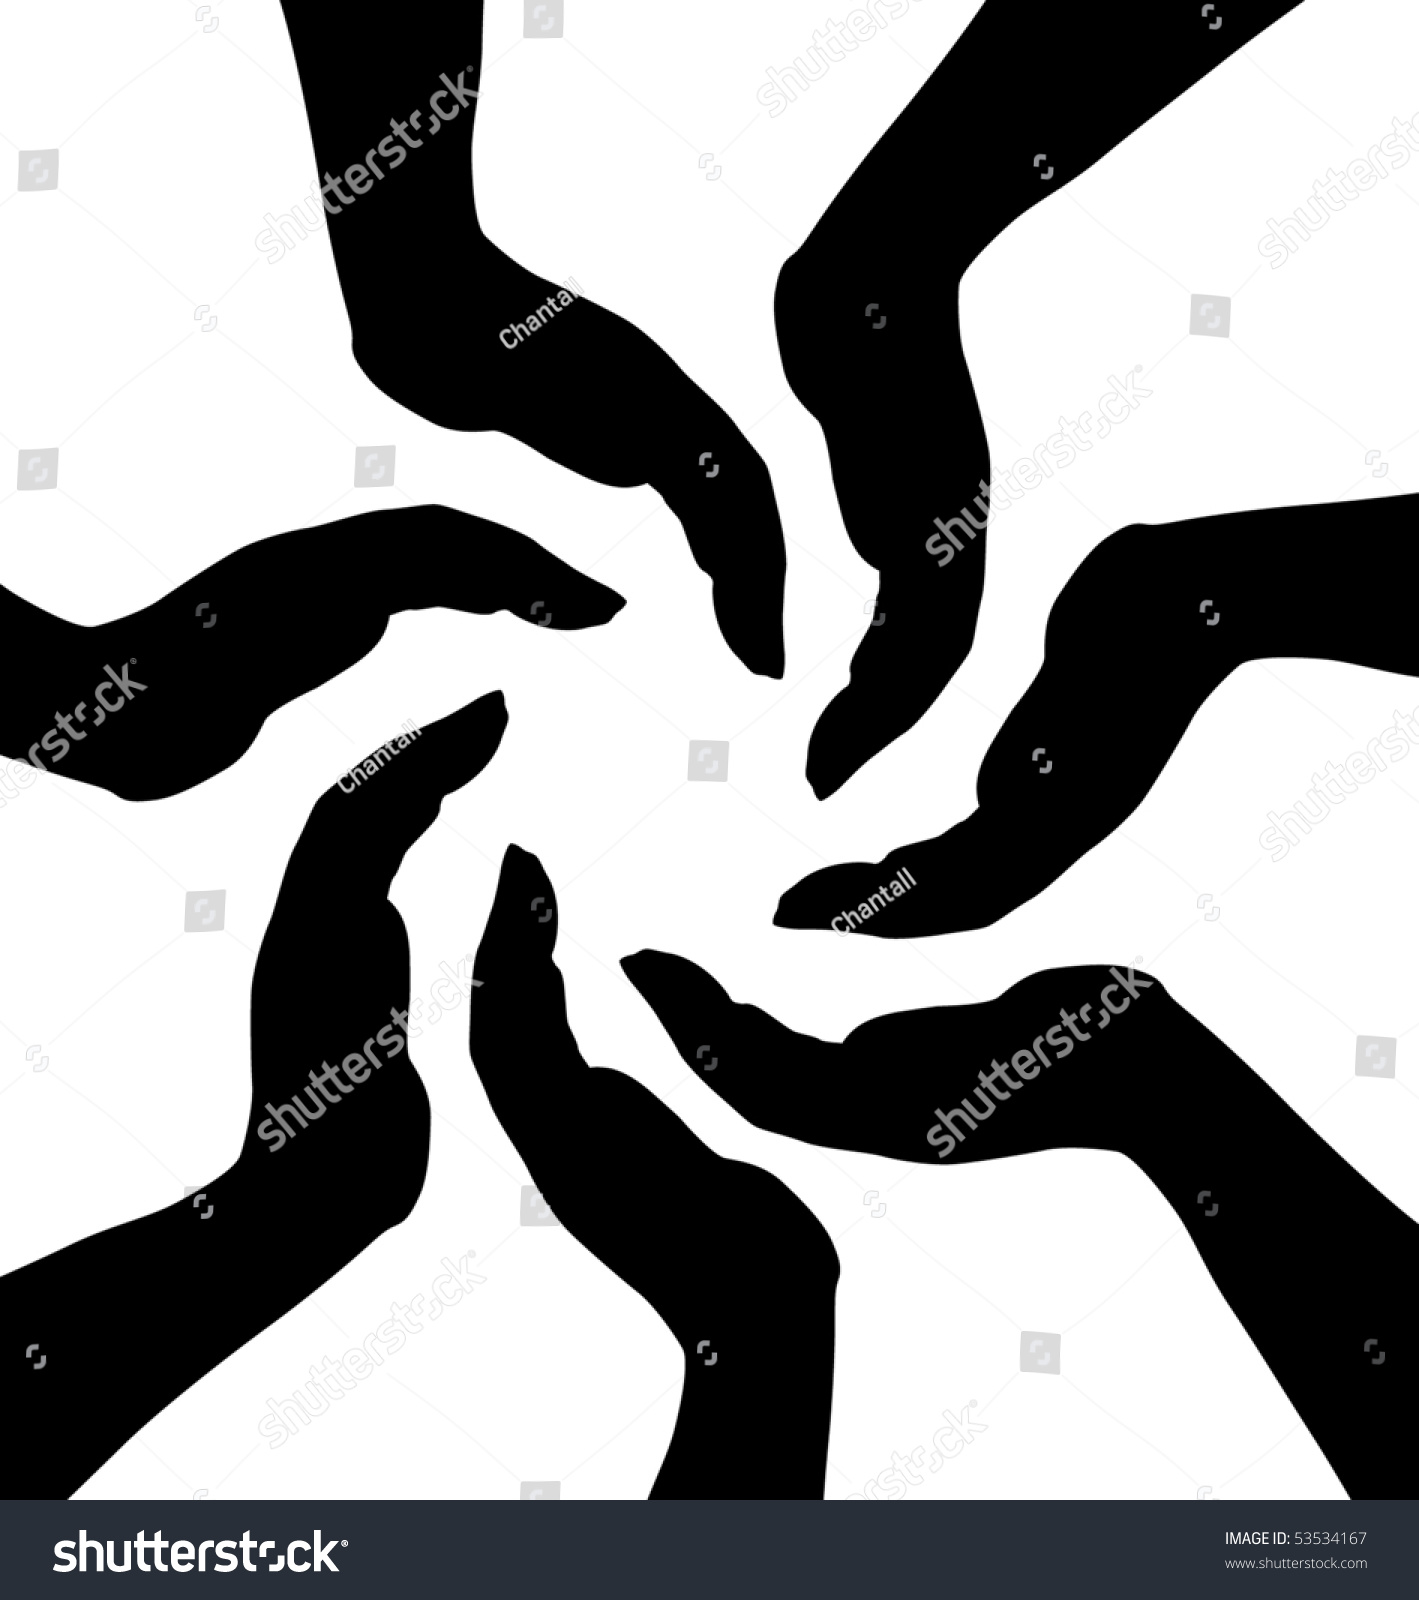 Human hands symbol protection stock vector 53534167 shutterstock human hands symbol of protection biocorpaavc